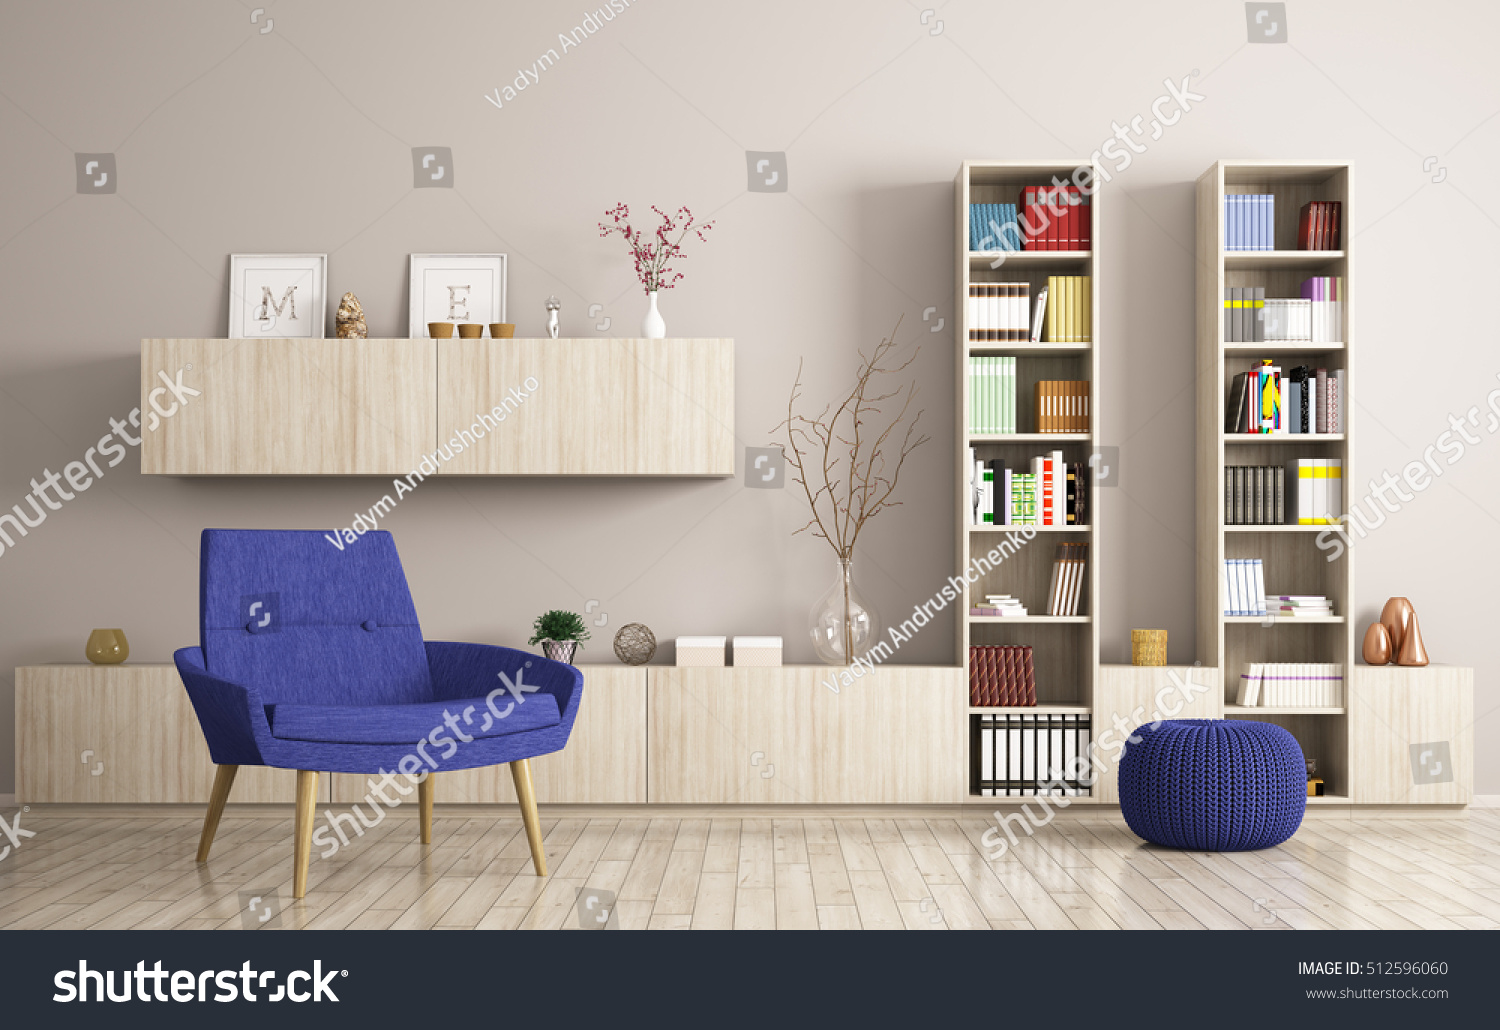 Modern living room interior with armchair and